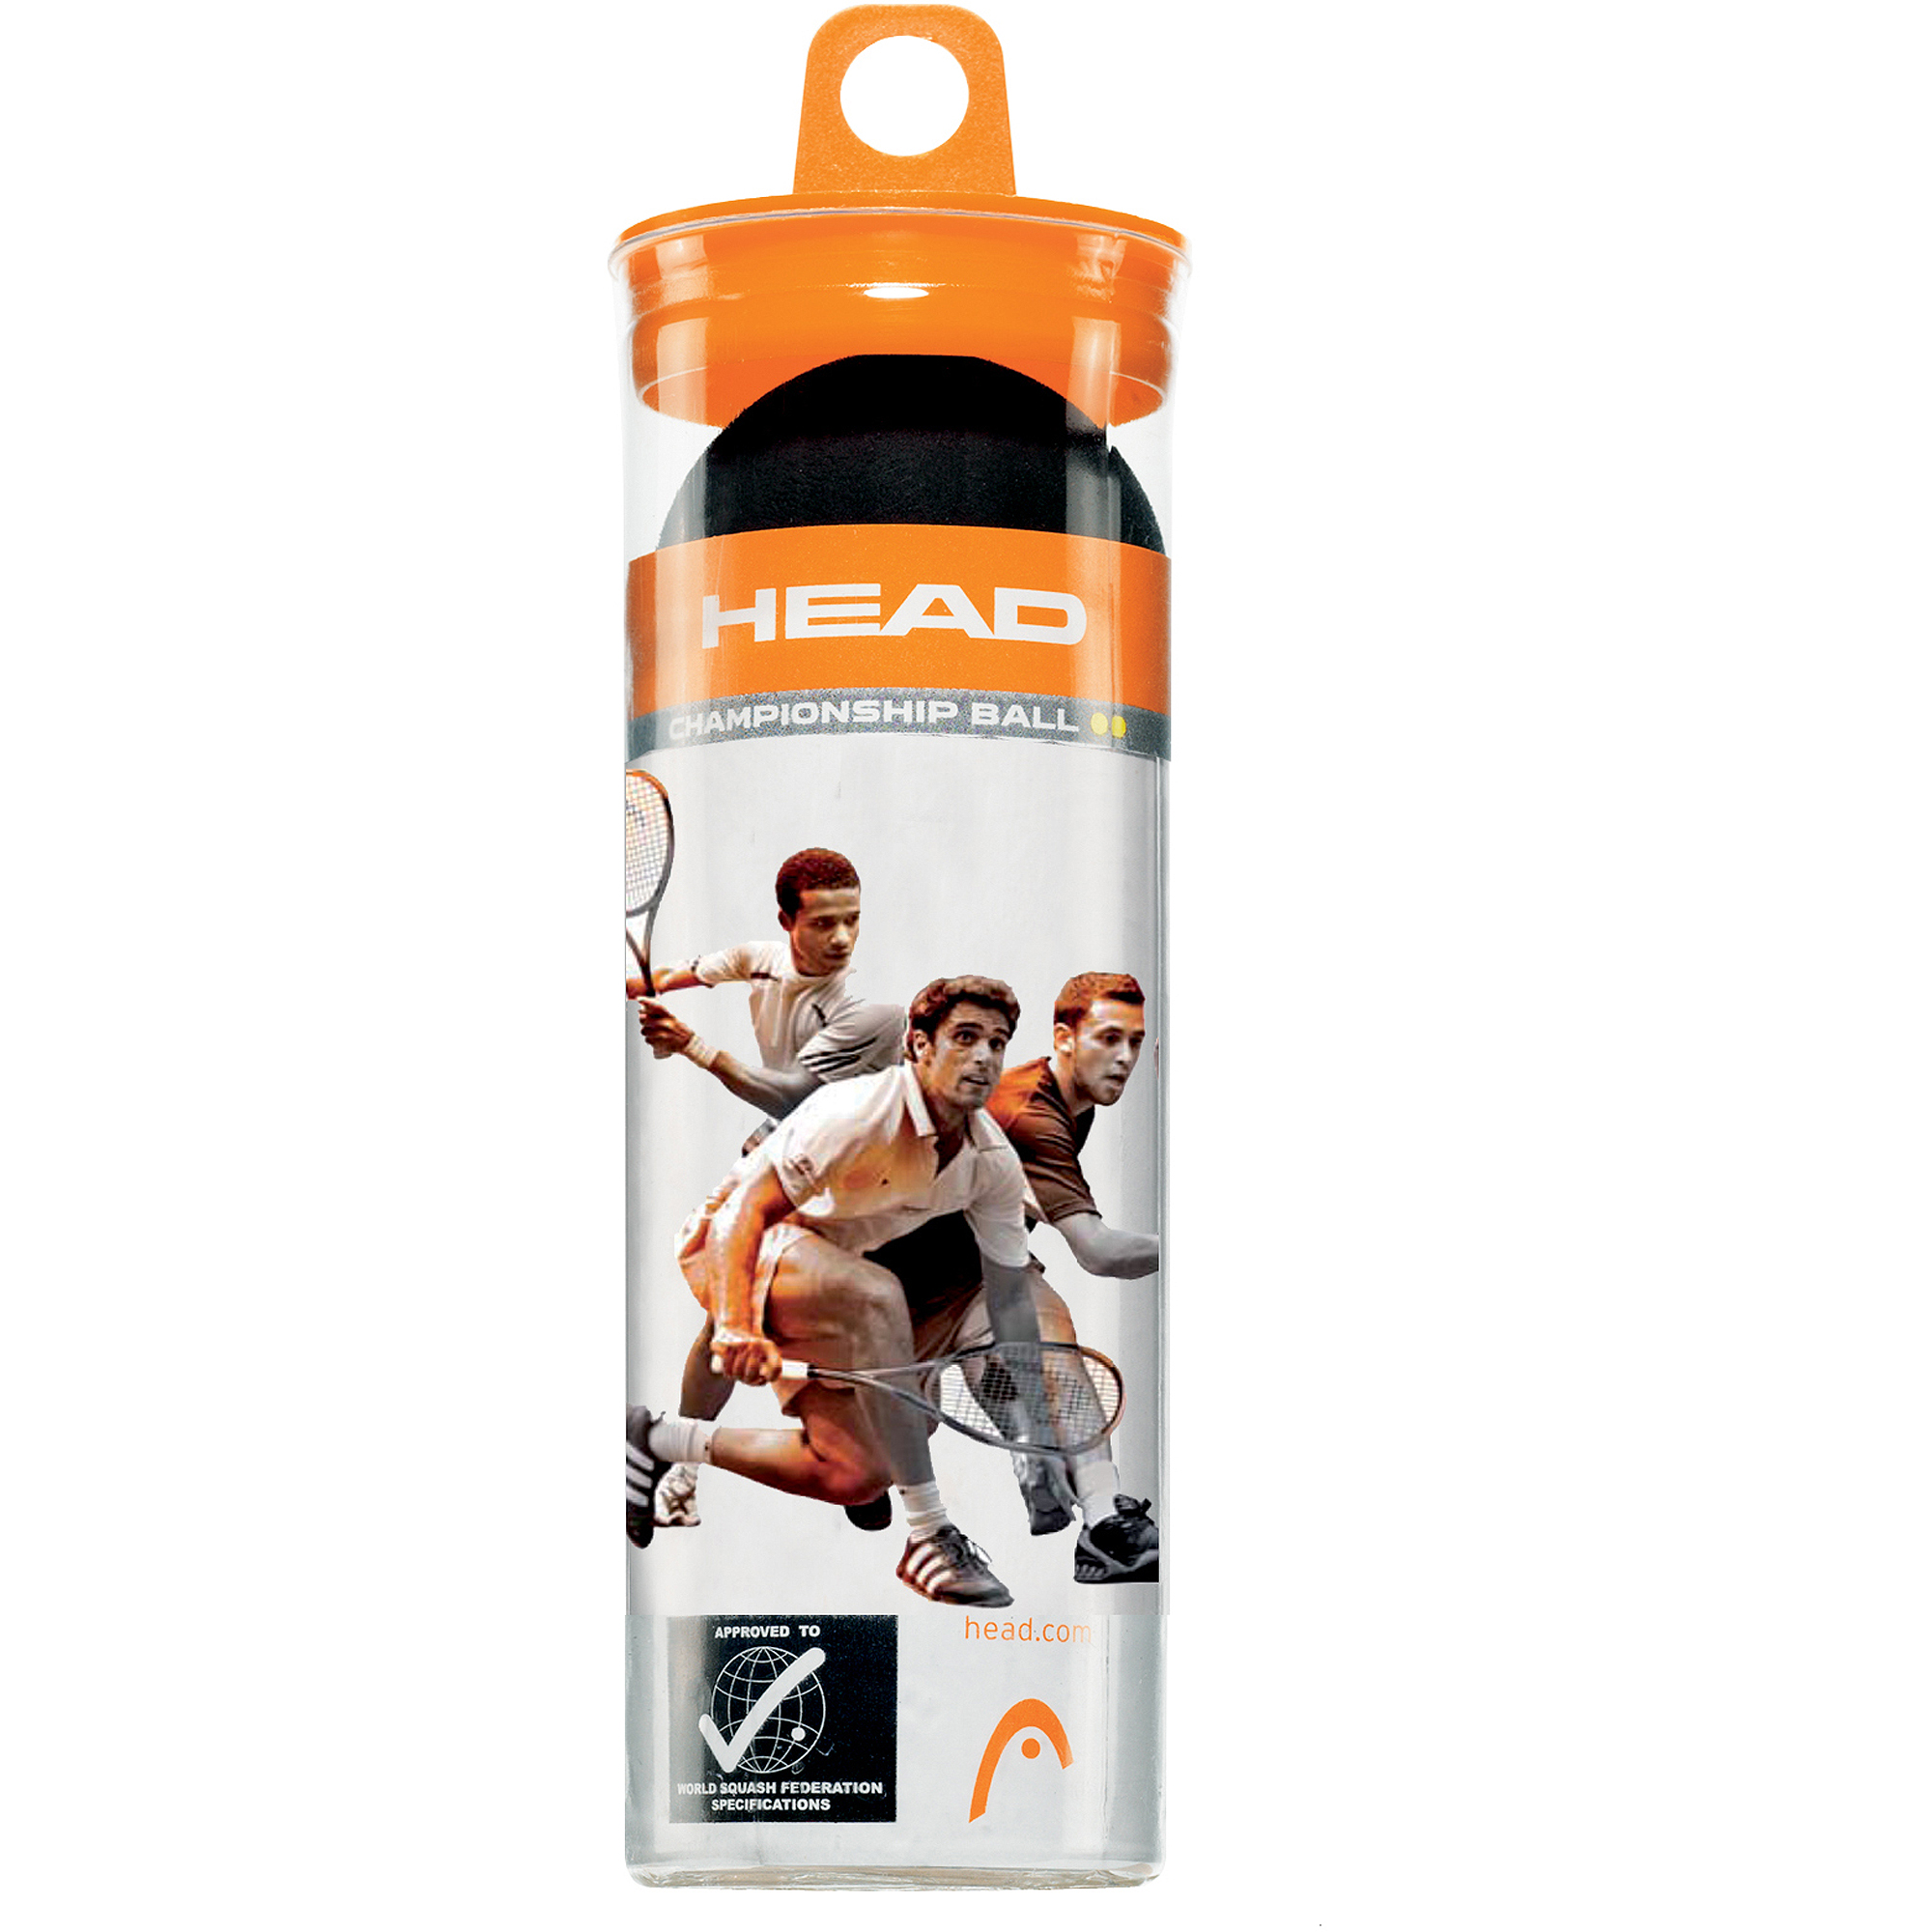 HEAD Squash 3 Ball Championship Tube